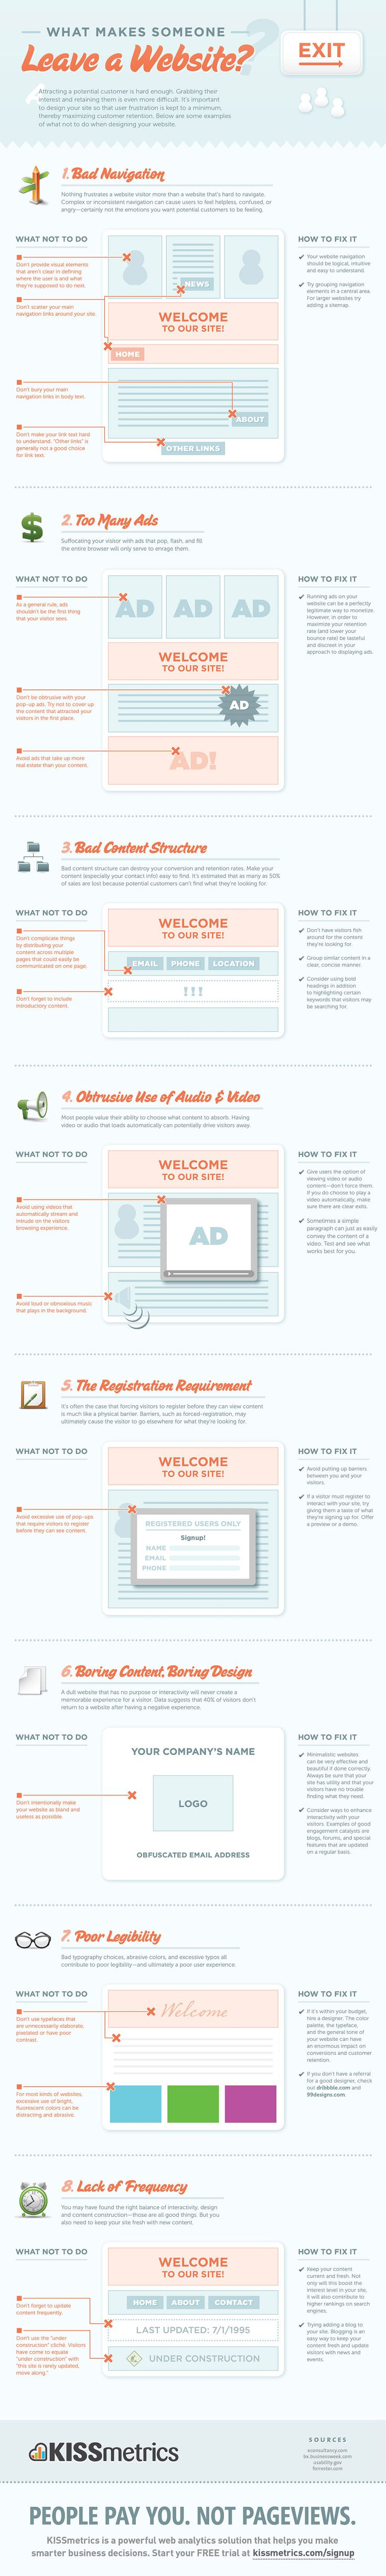 Why users leave your website. Bad web design Vs Good web design. #webdesign #design